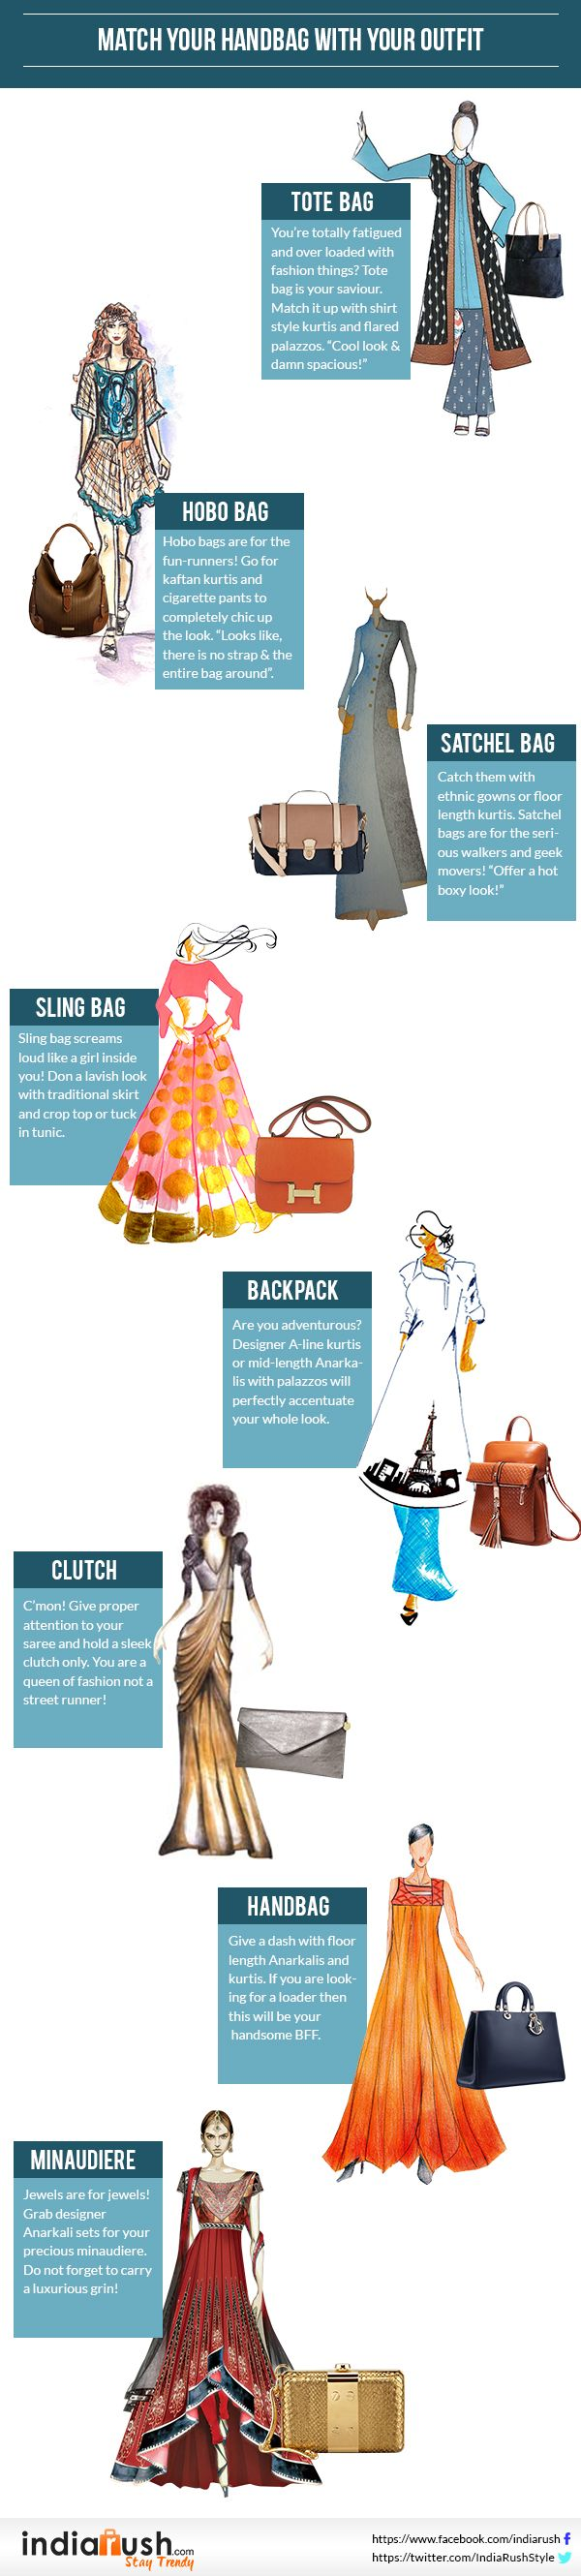 Match Your Handbag With Your Outfit | Fashion Tips - Indiarush